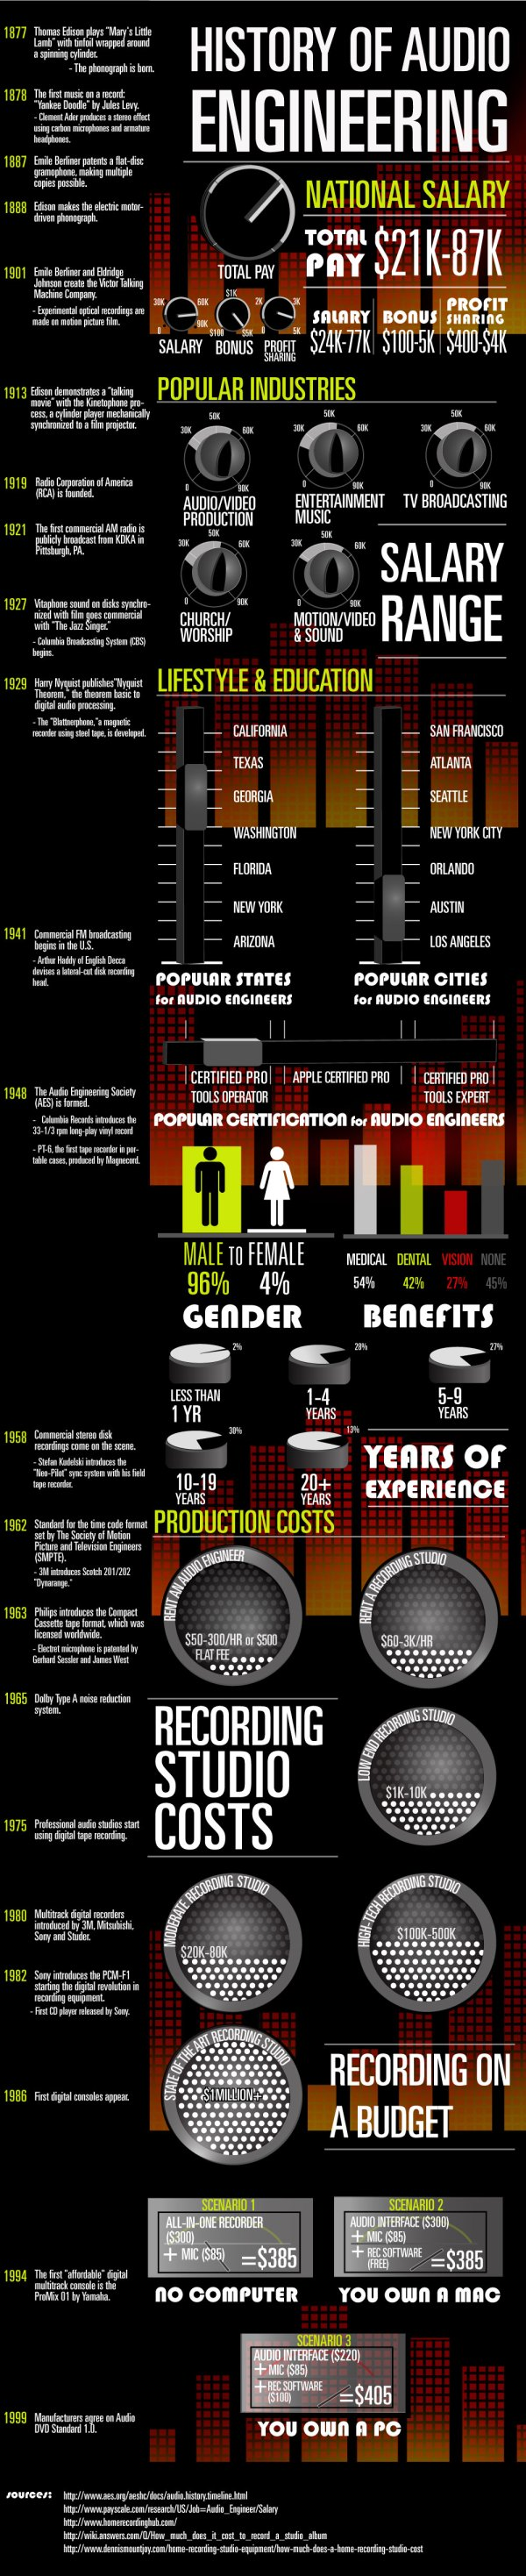 Audio Engineer Salary Infographic Smart Income